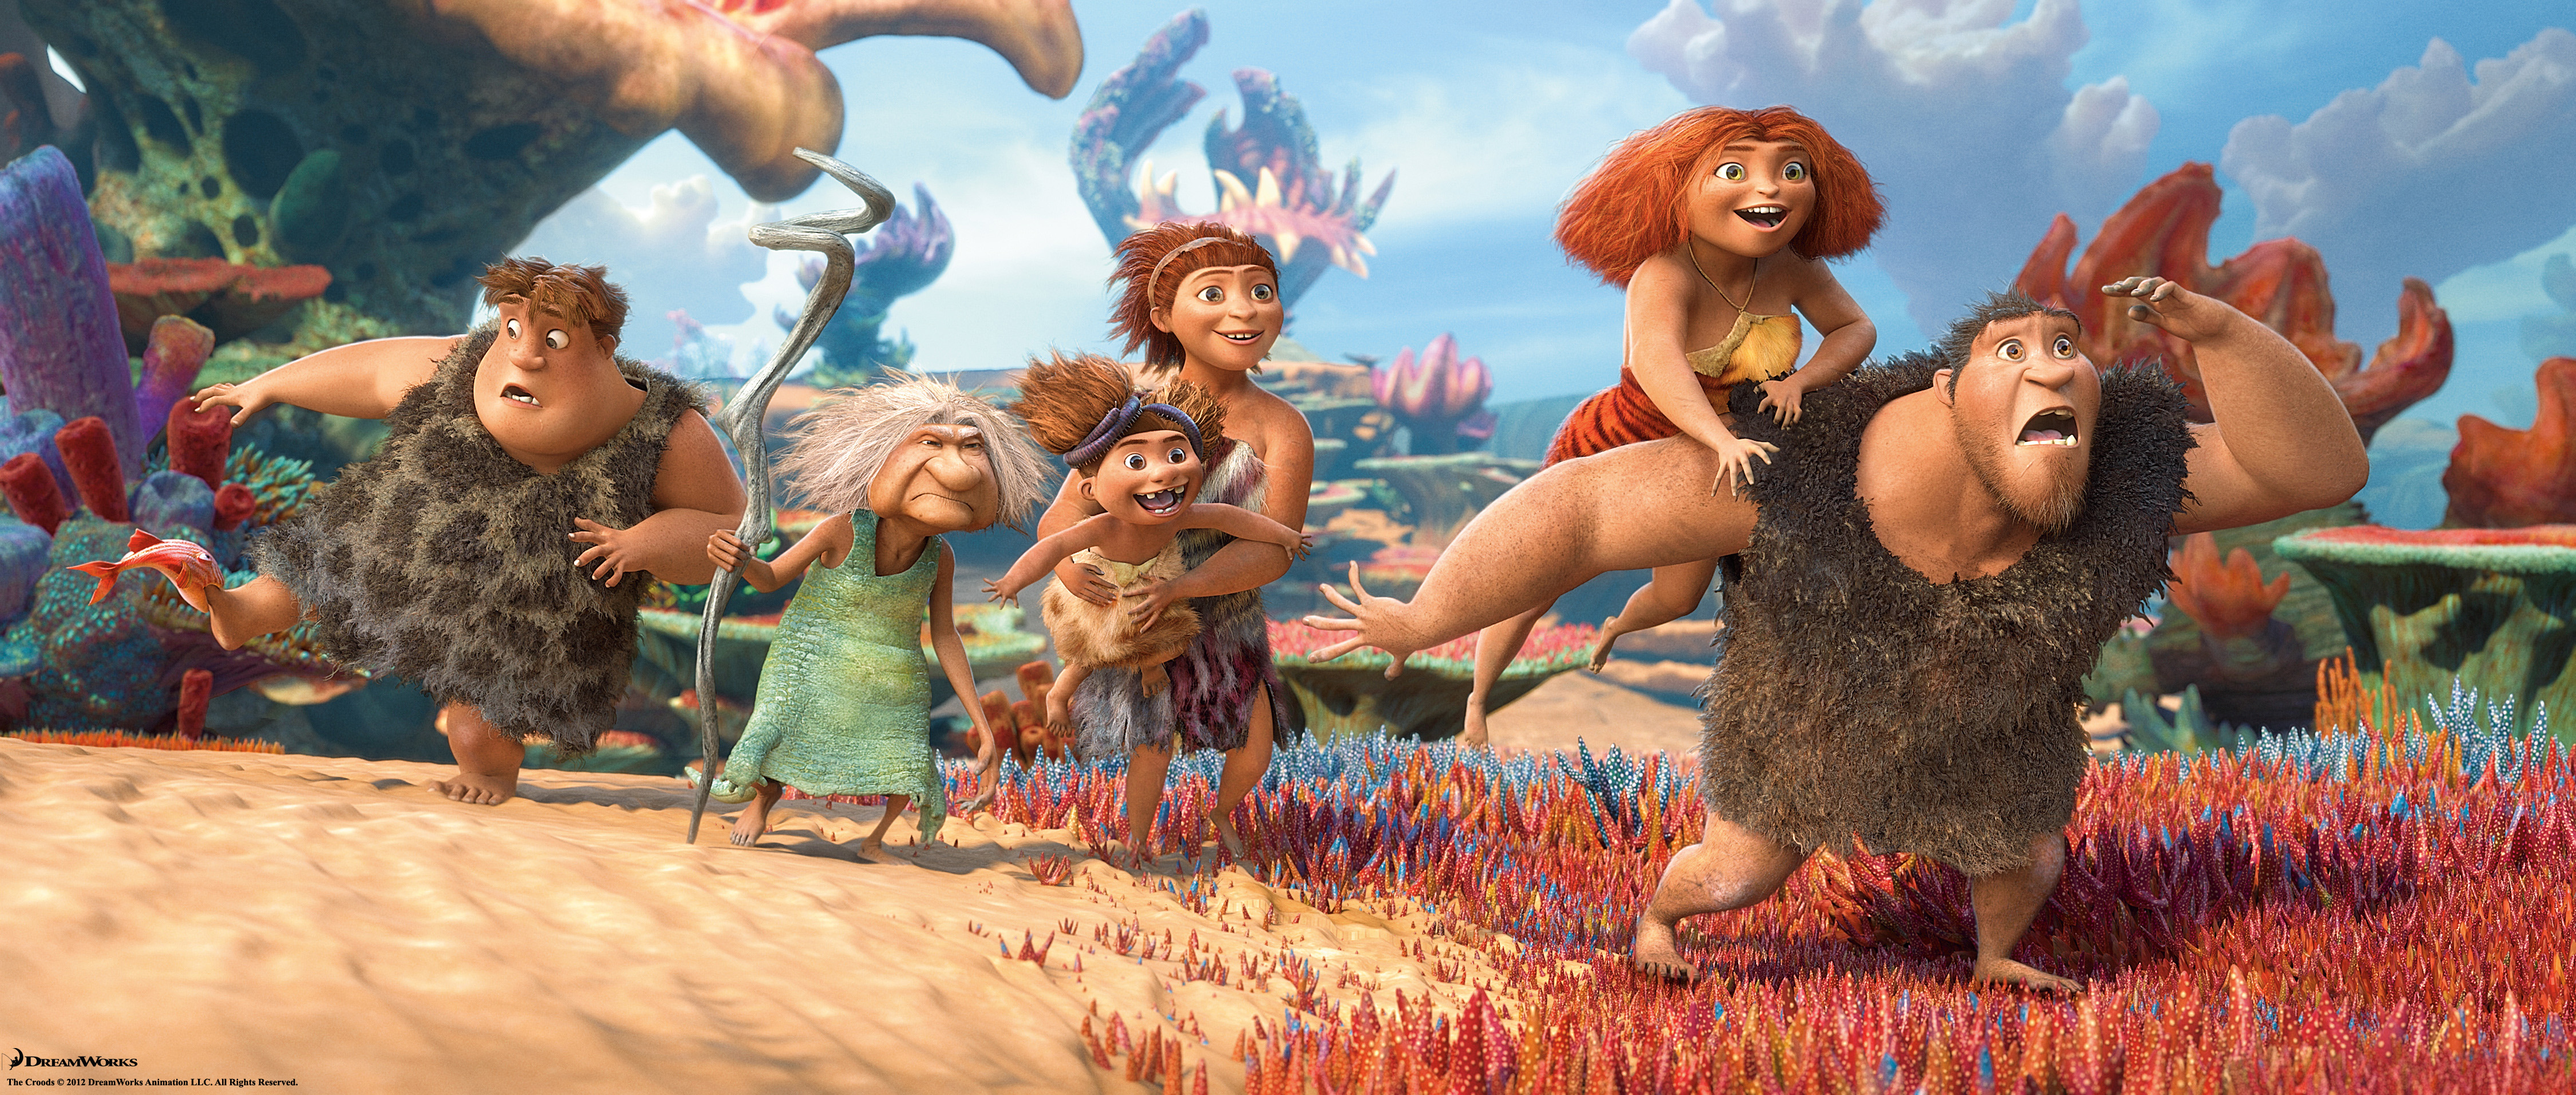 Los_Croods_FirstLook_21_4K_RGB_v1